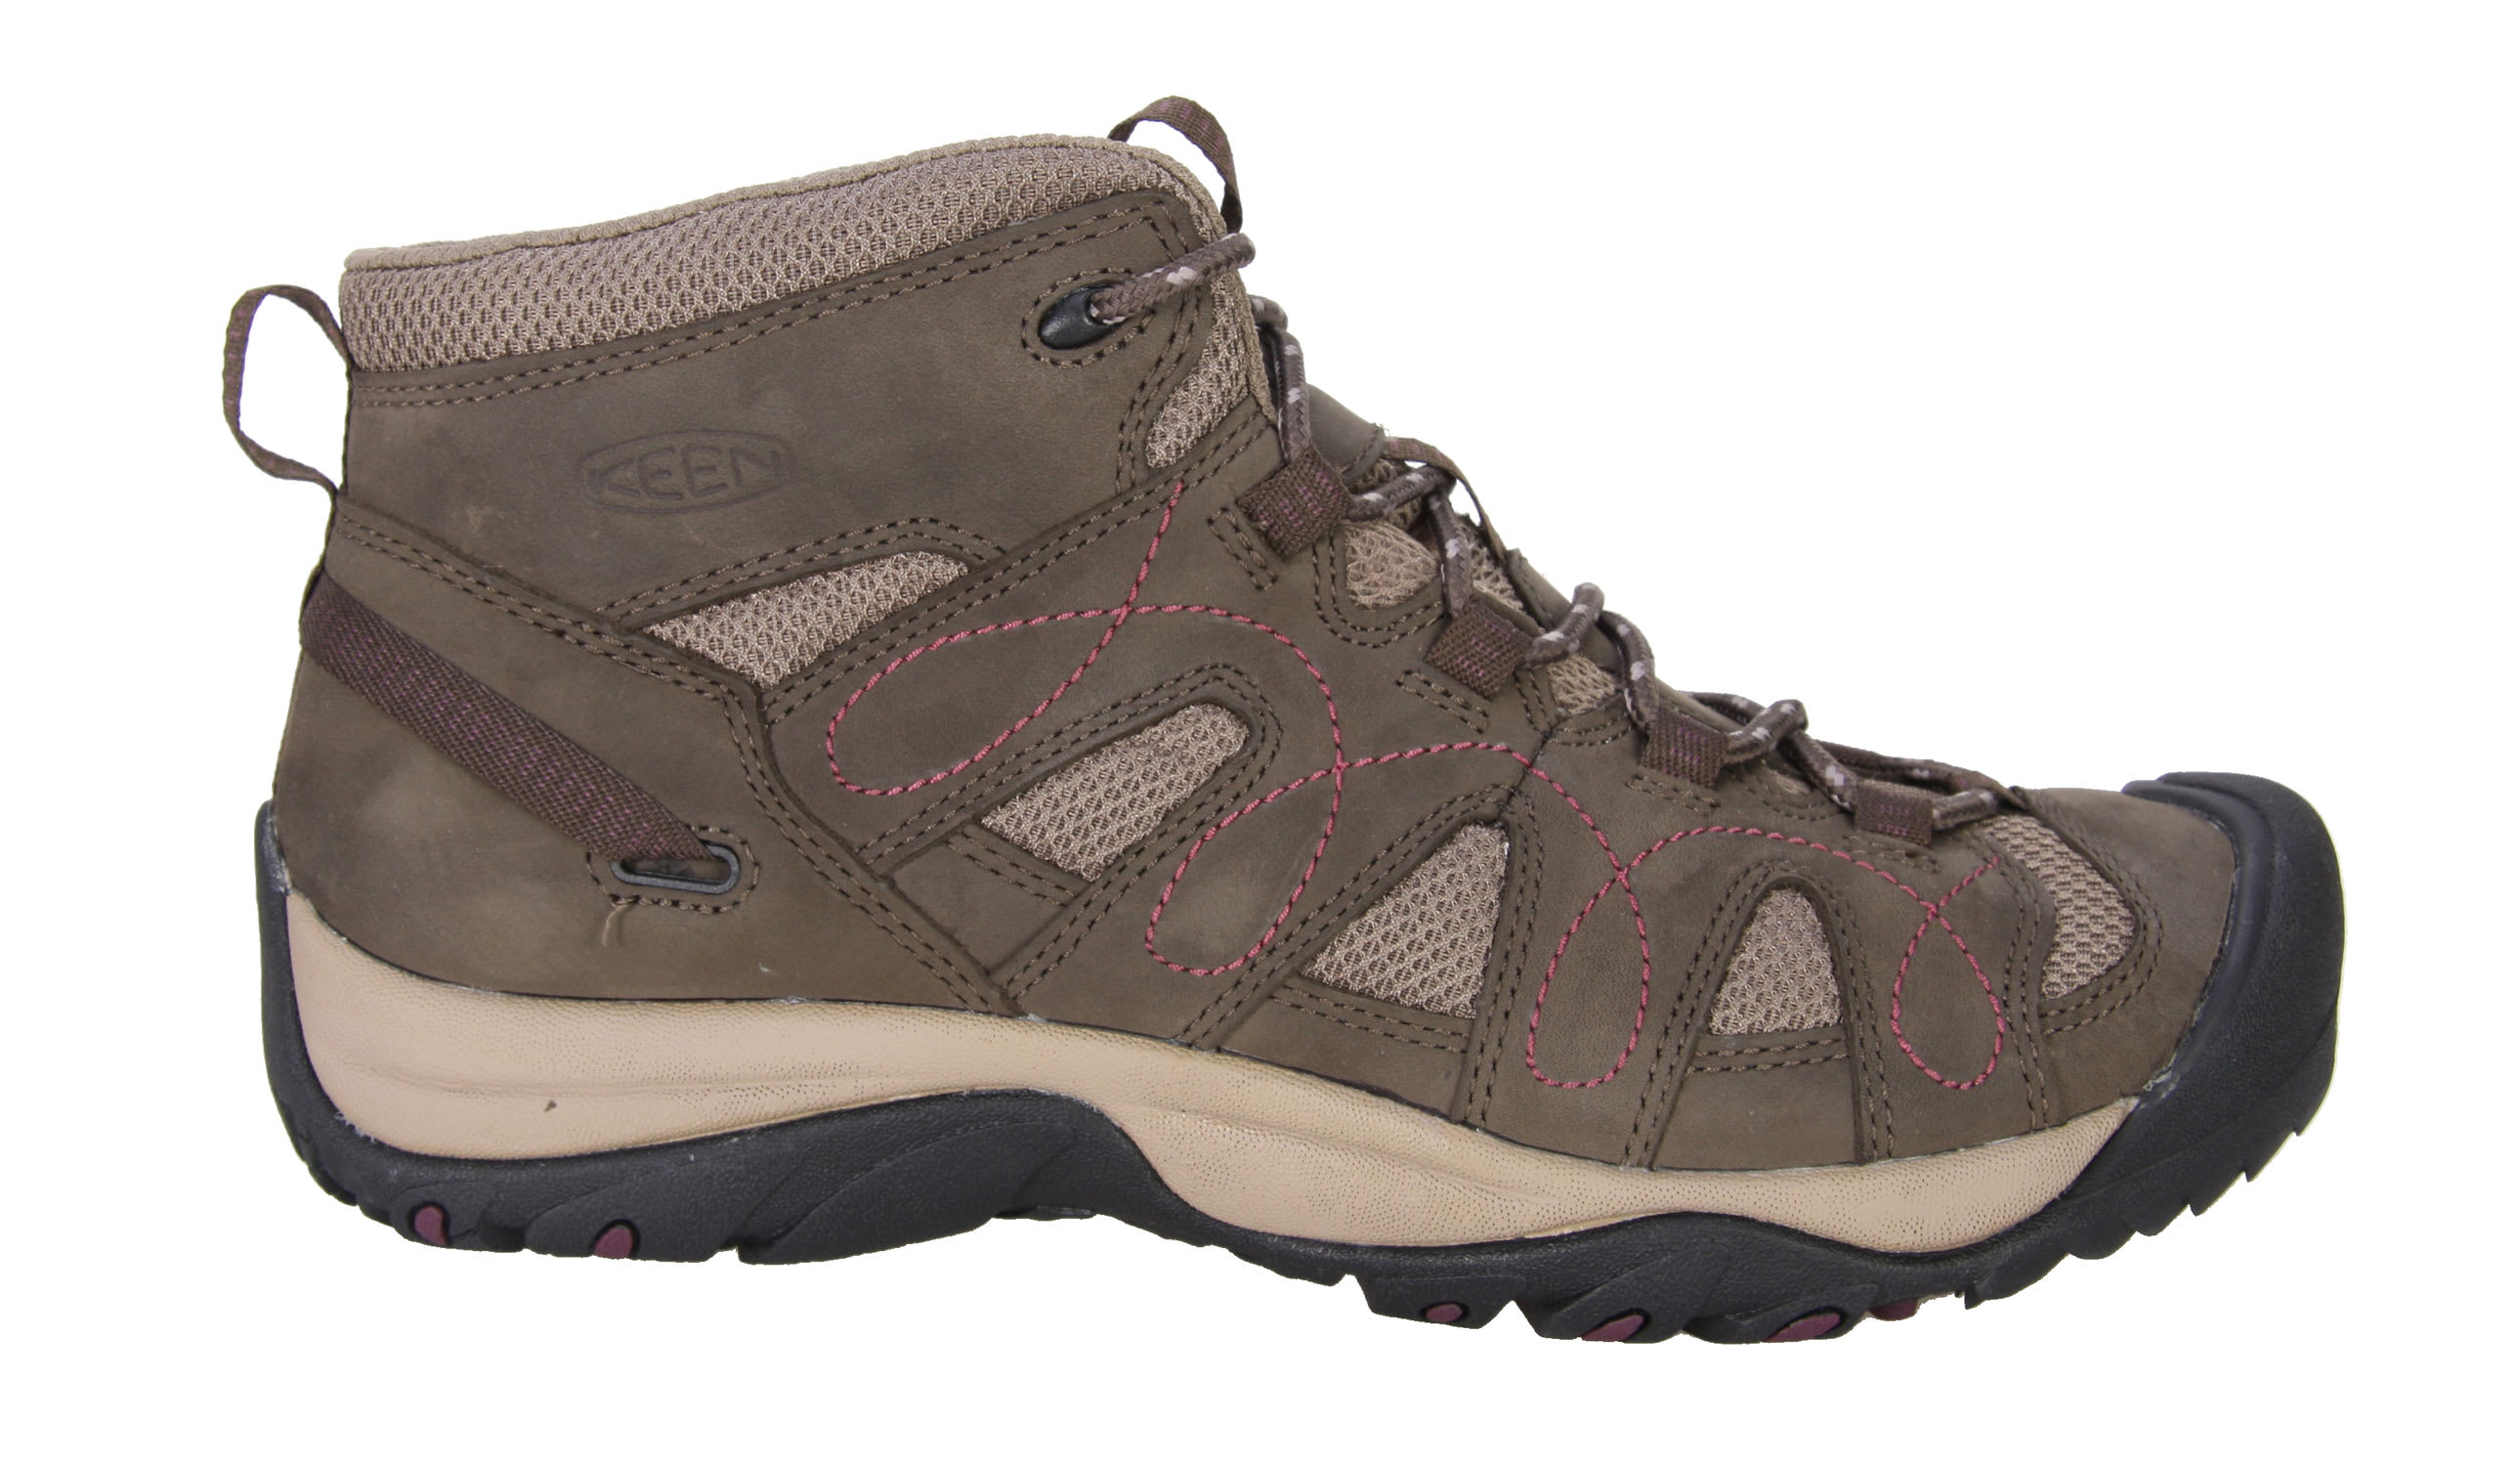 Shop for Keen Shasta Mid Hiking Shoes Black Olive/Brindle - Women's